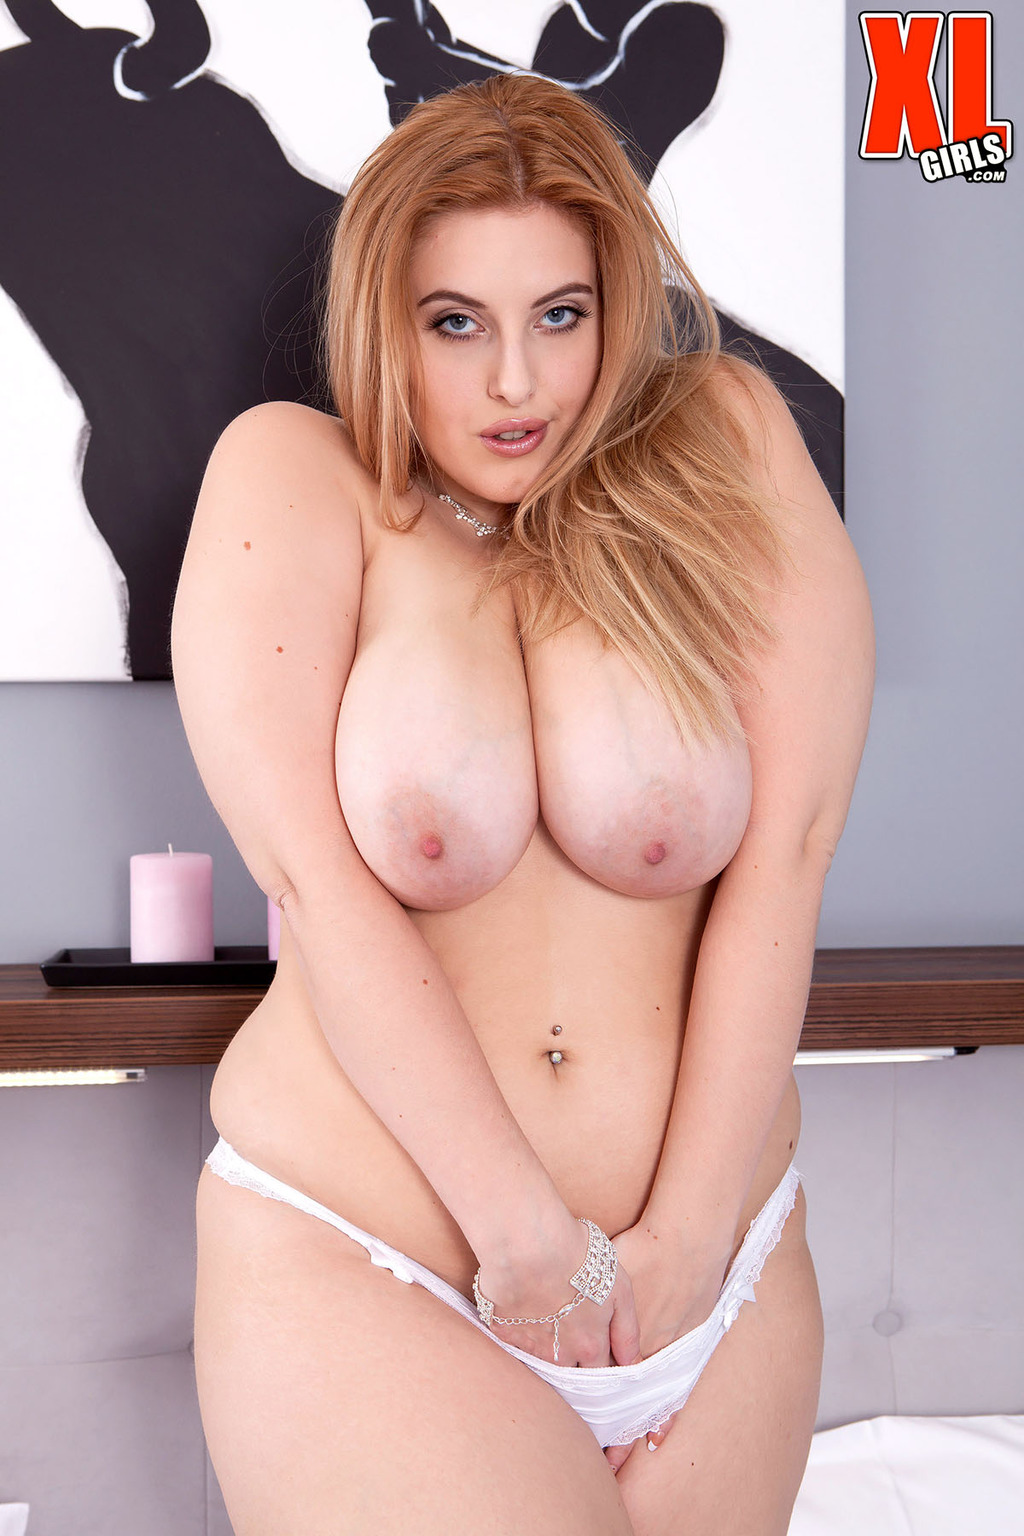 XL Girls - the best plump, chubby, beautiful models on the planet who ...